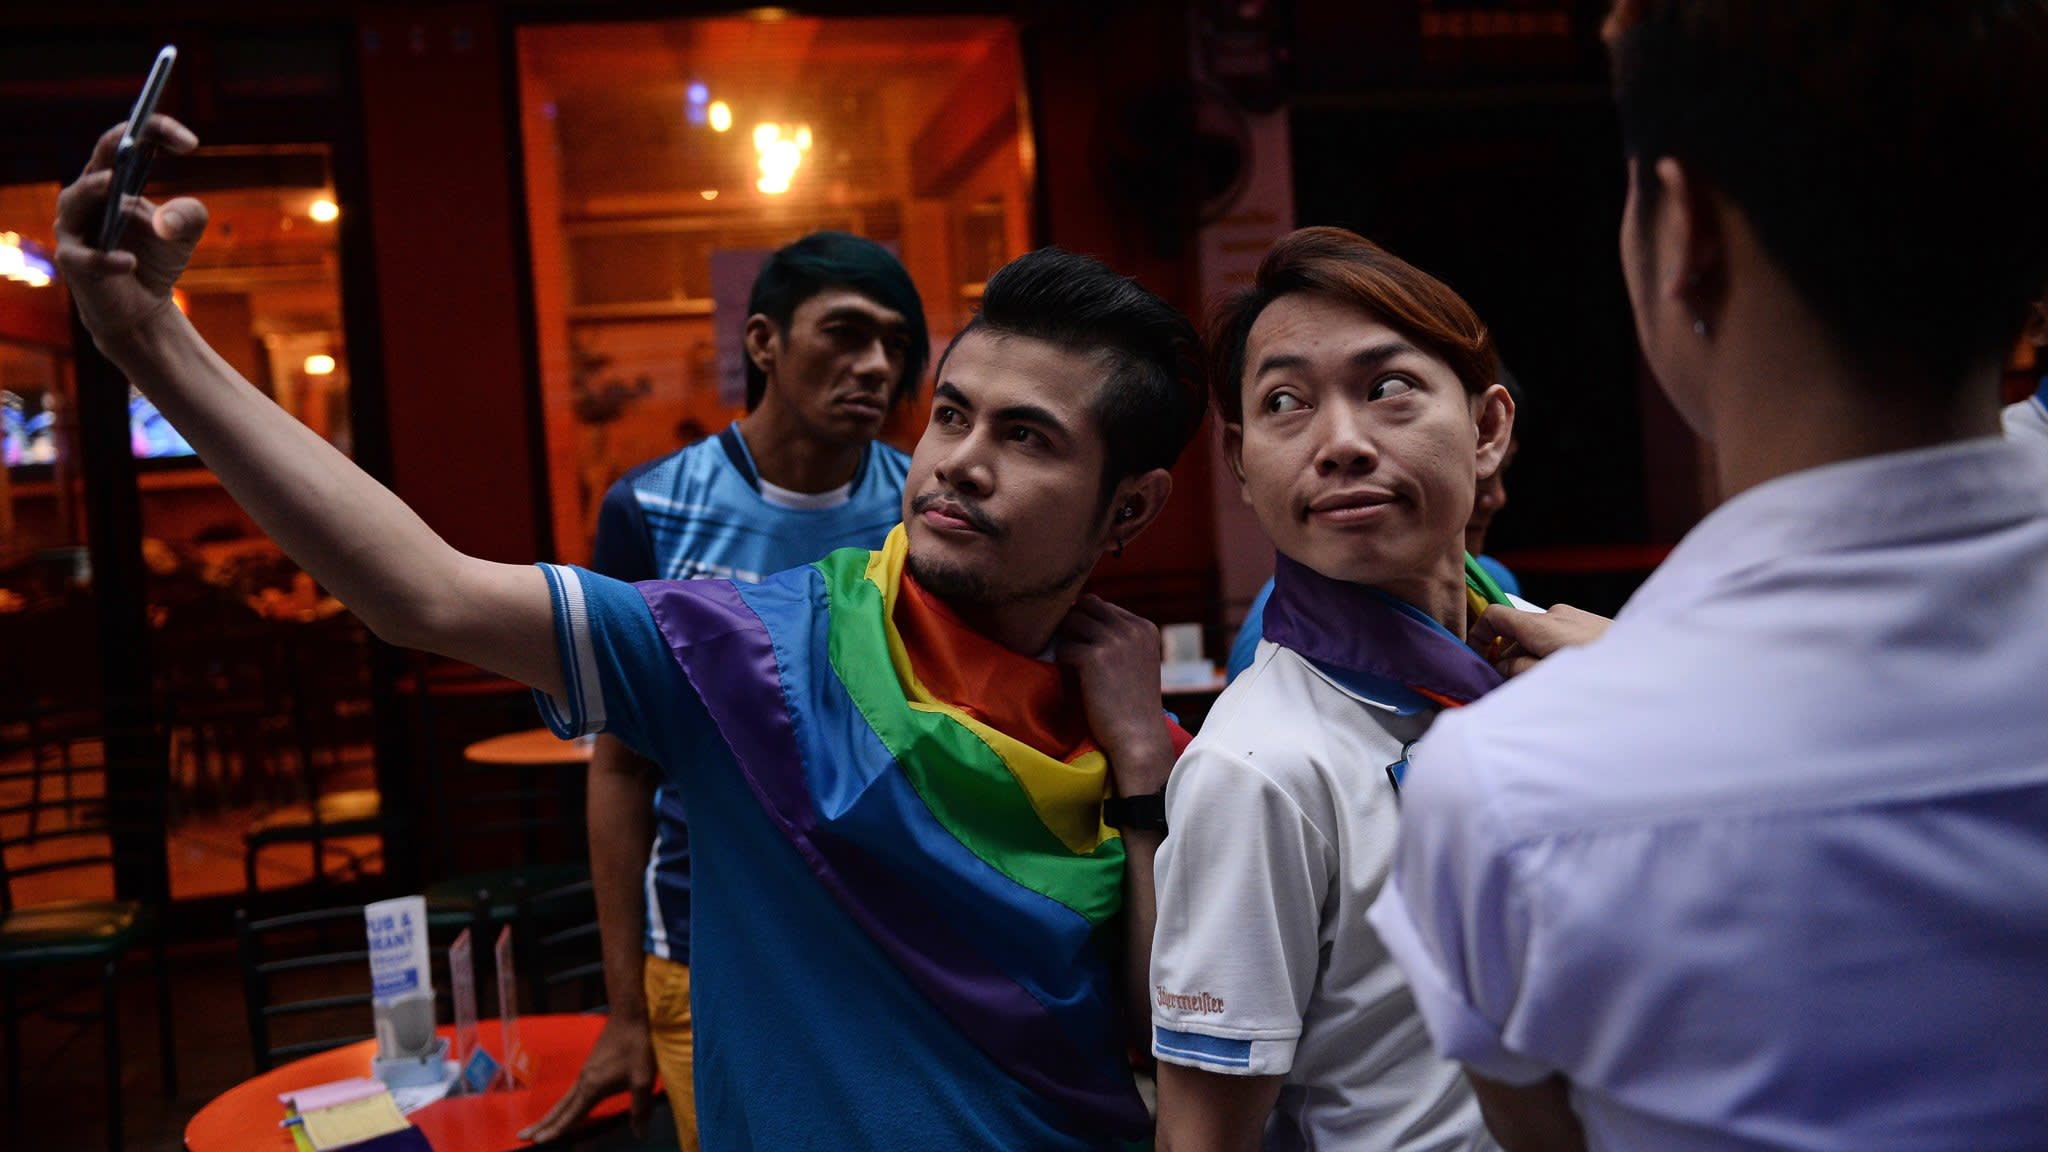 Thais celebrate the prospect of same-sex unions as a leap forward